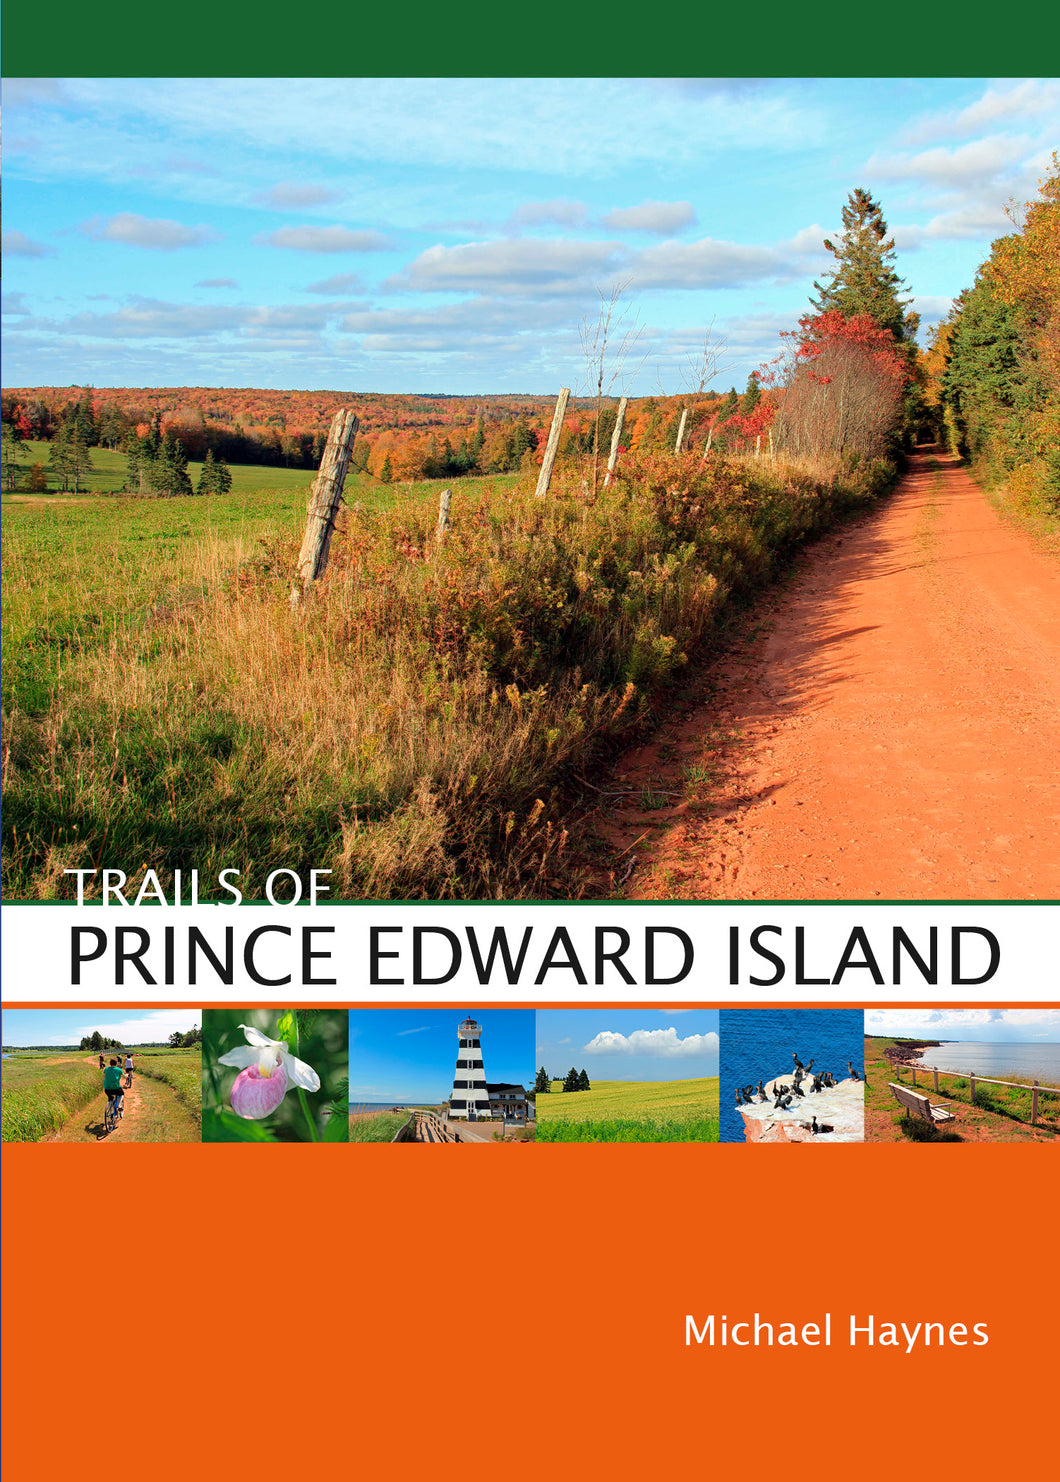 Trails of Prince Edward Island